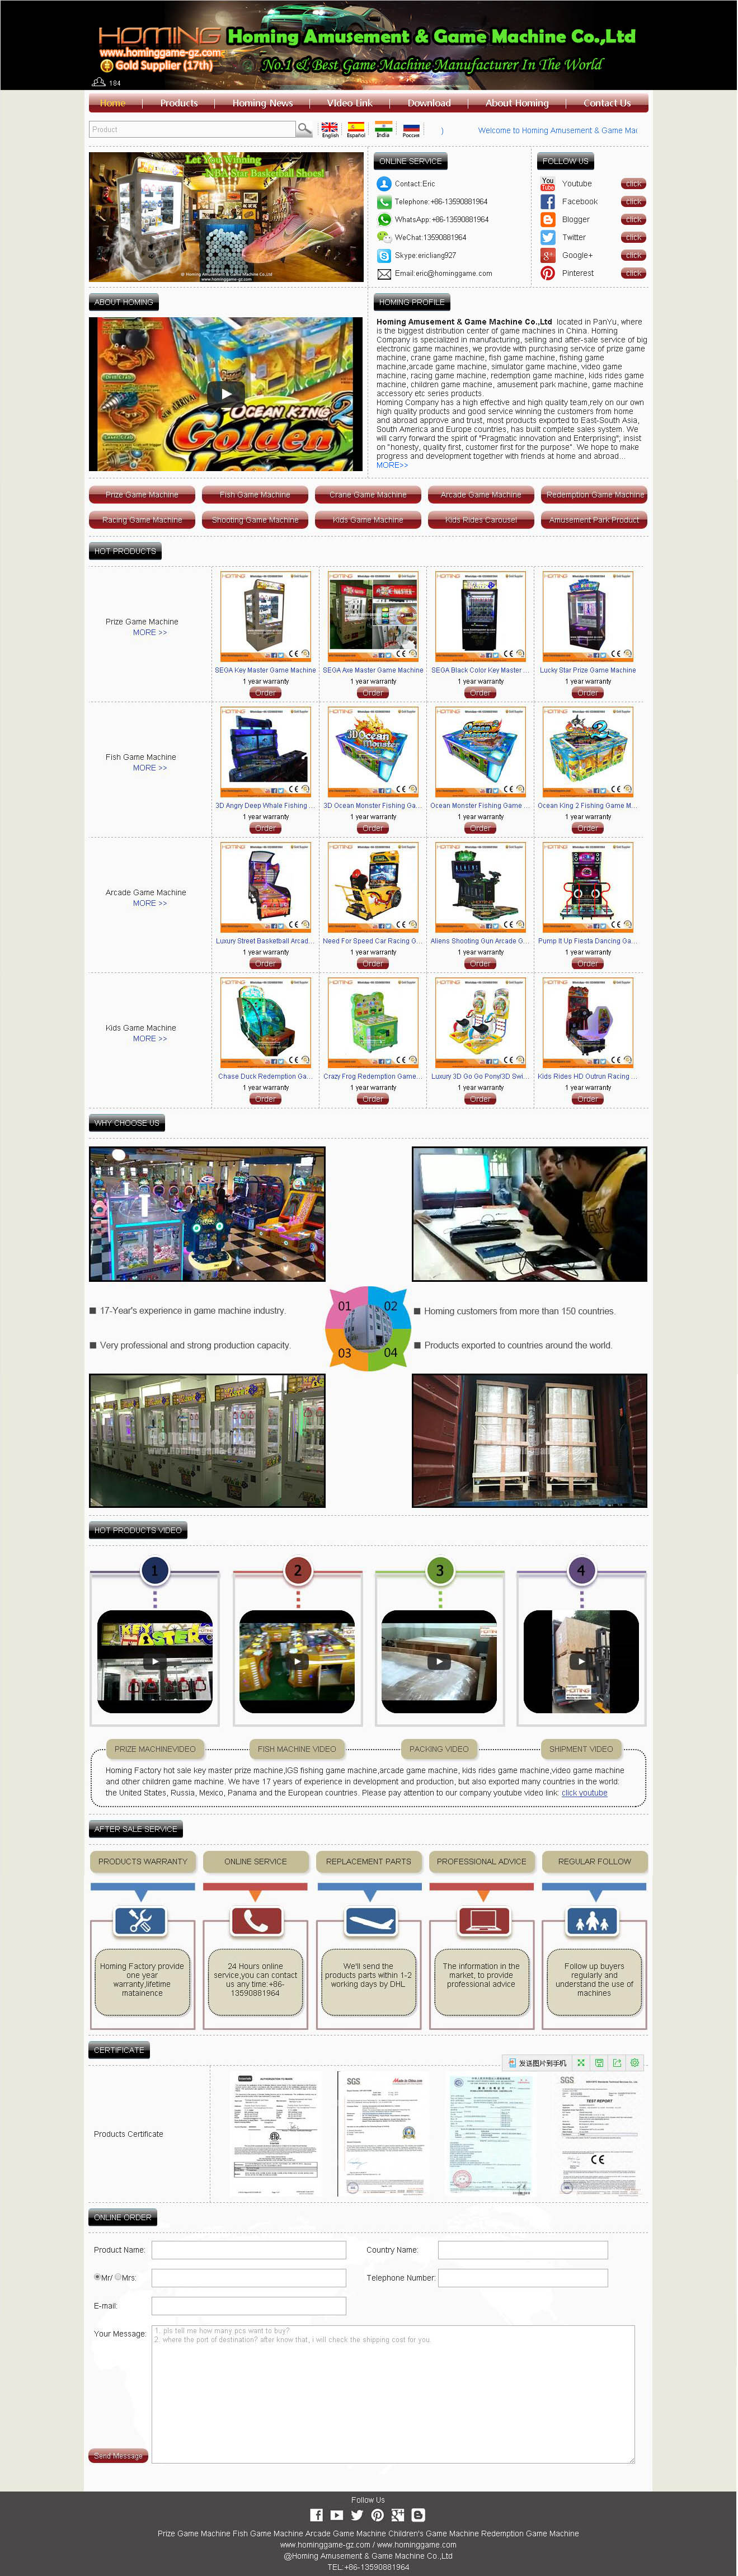 Hot Sale 10,0000 PCS Game Machine From Homing Game,Homing Game Factory